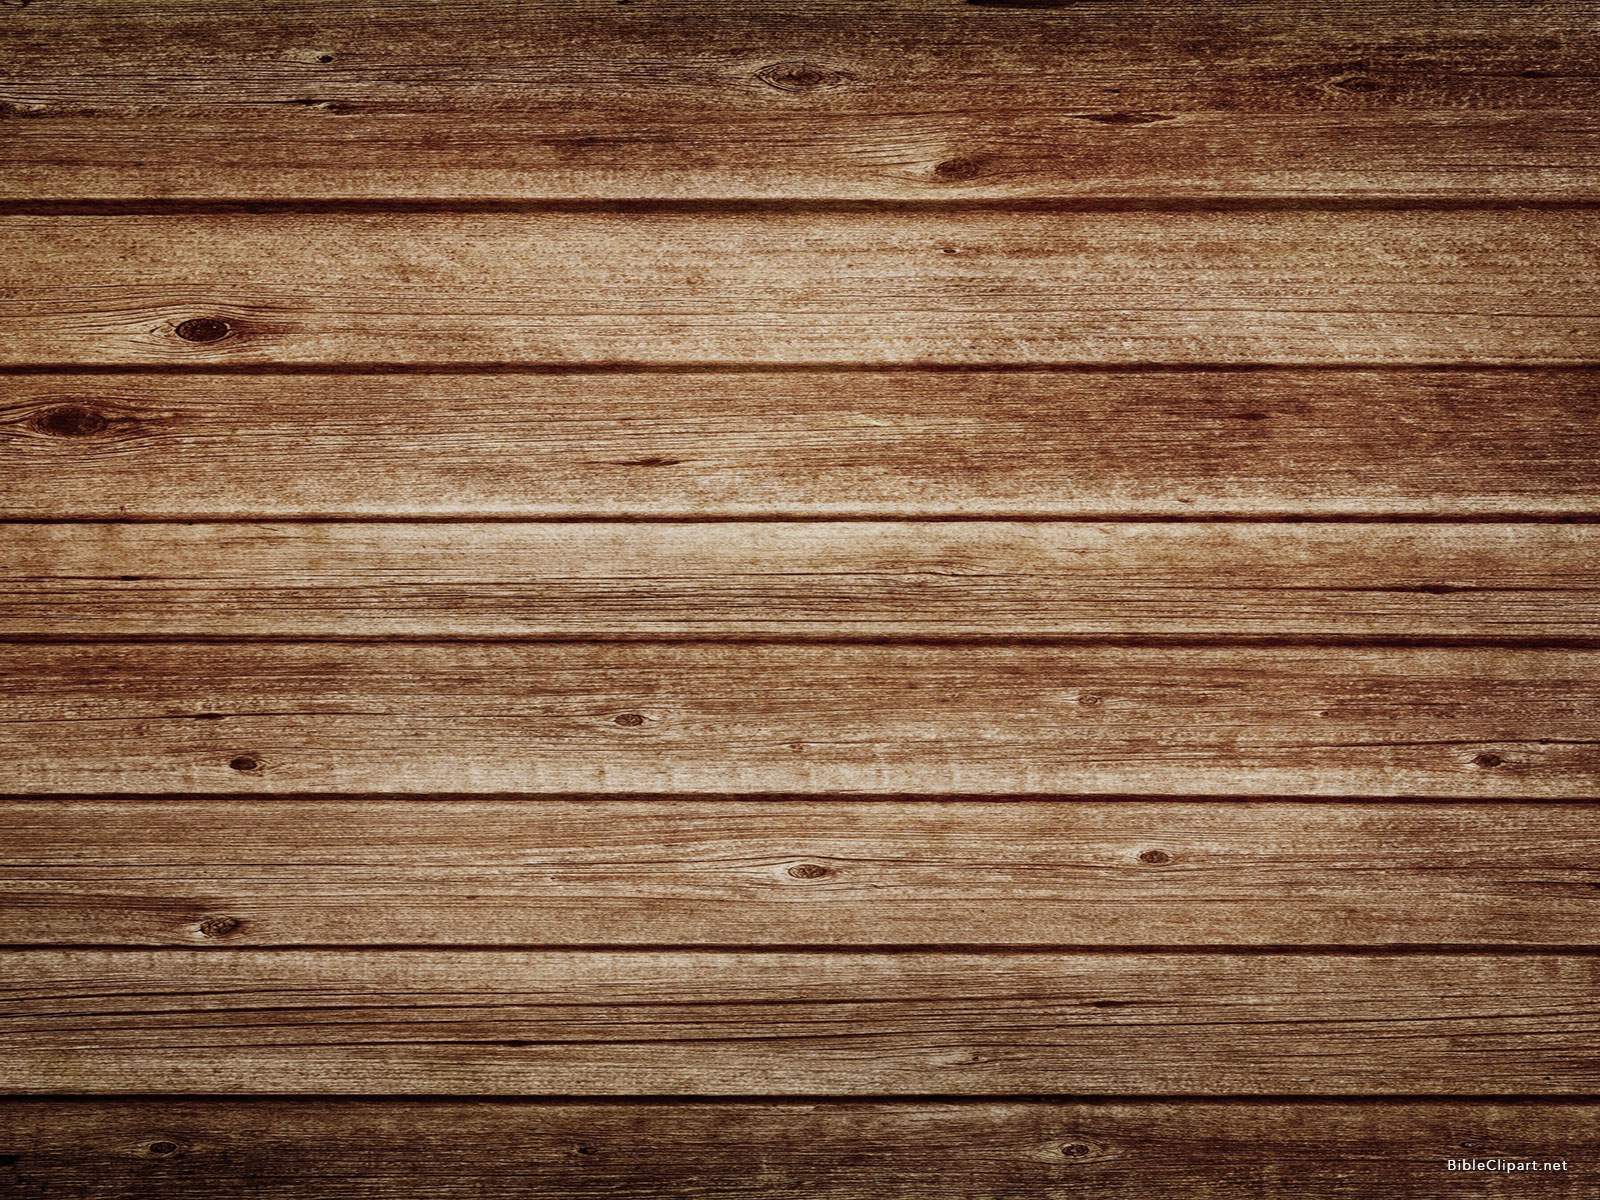 Wood Panel Hd Background   Bible Clipart